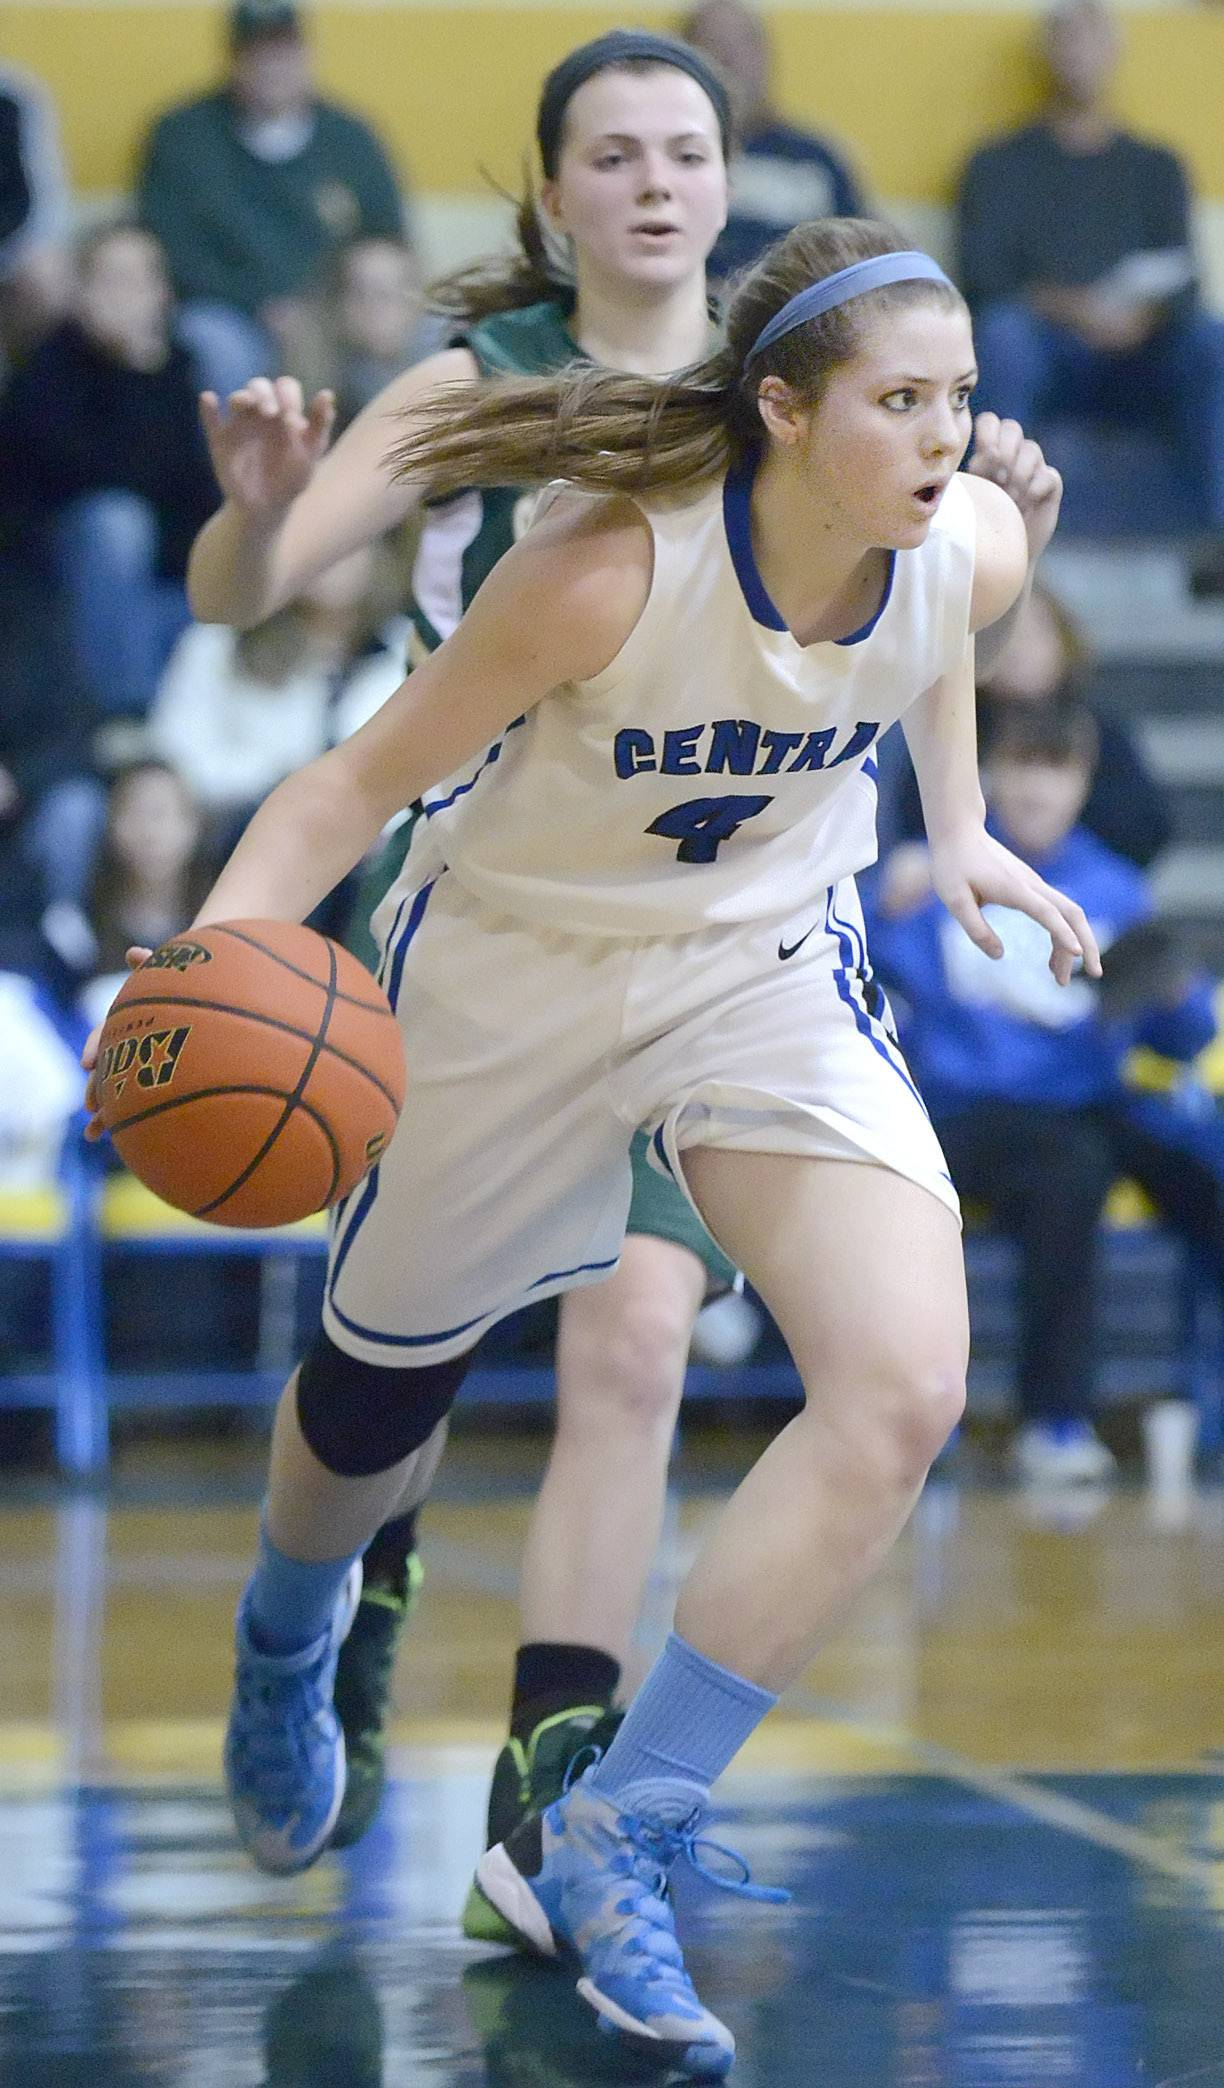 Burlington Central's Kayla Ross swipes a rebound and takes off past St. Edward's Katie Swanson in the fourth quarter of the Class 3A regional championship game on Saturday, February 22.